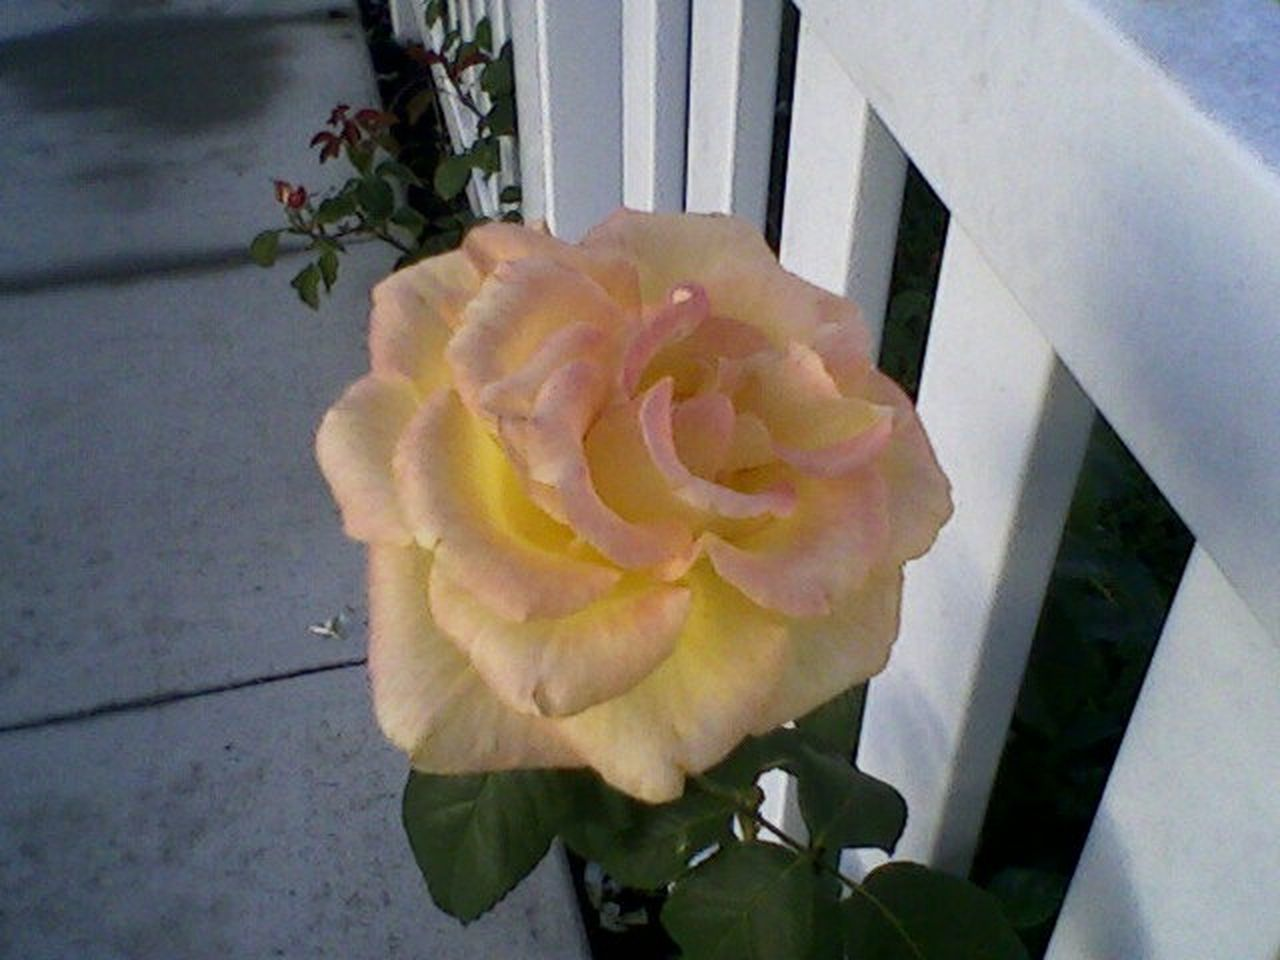 Beauty In Nature Blooming Close-up First Eyeem Photo Flower Flower Head No People Rose By Fence Rosé Yellow And White Yellow Rose